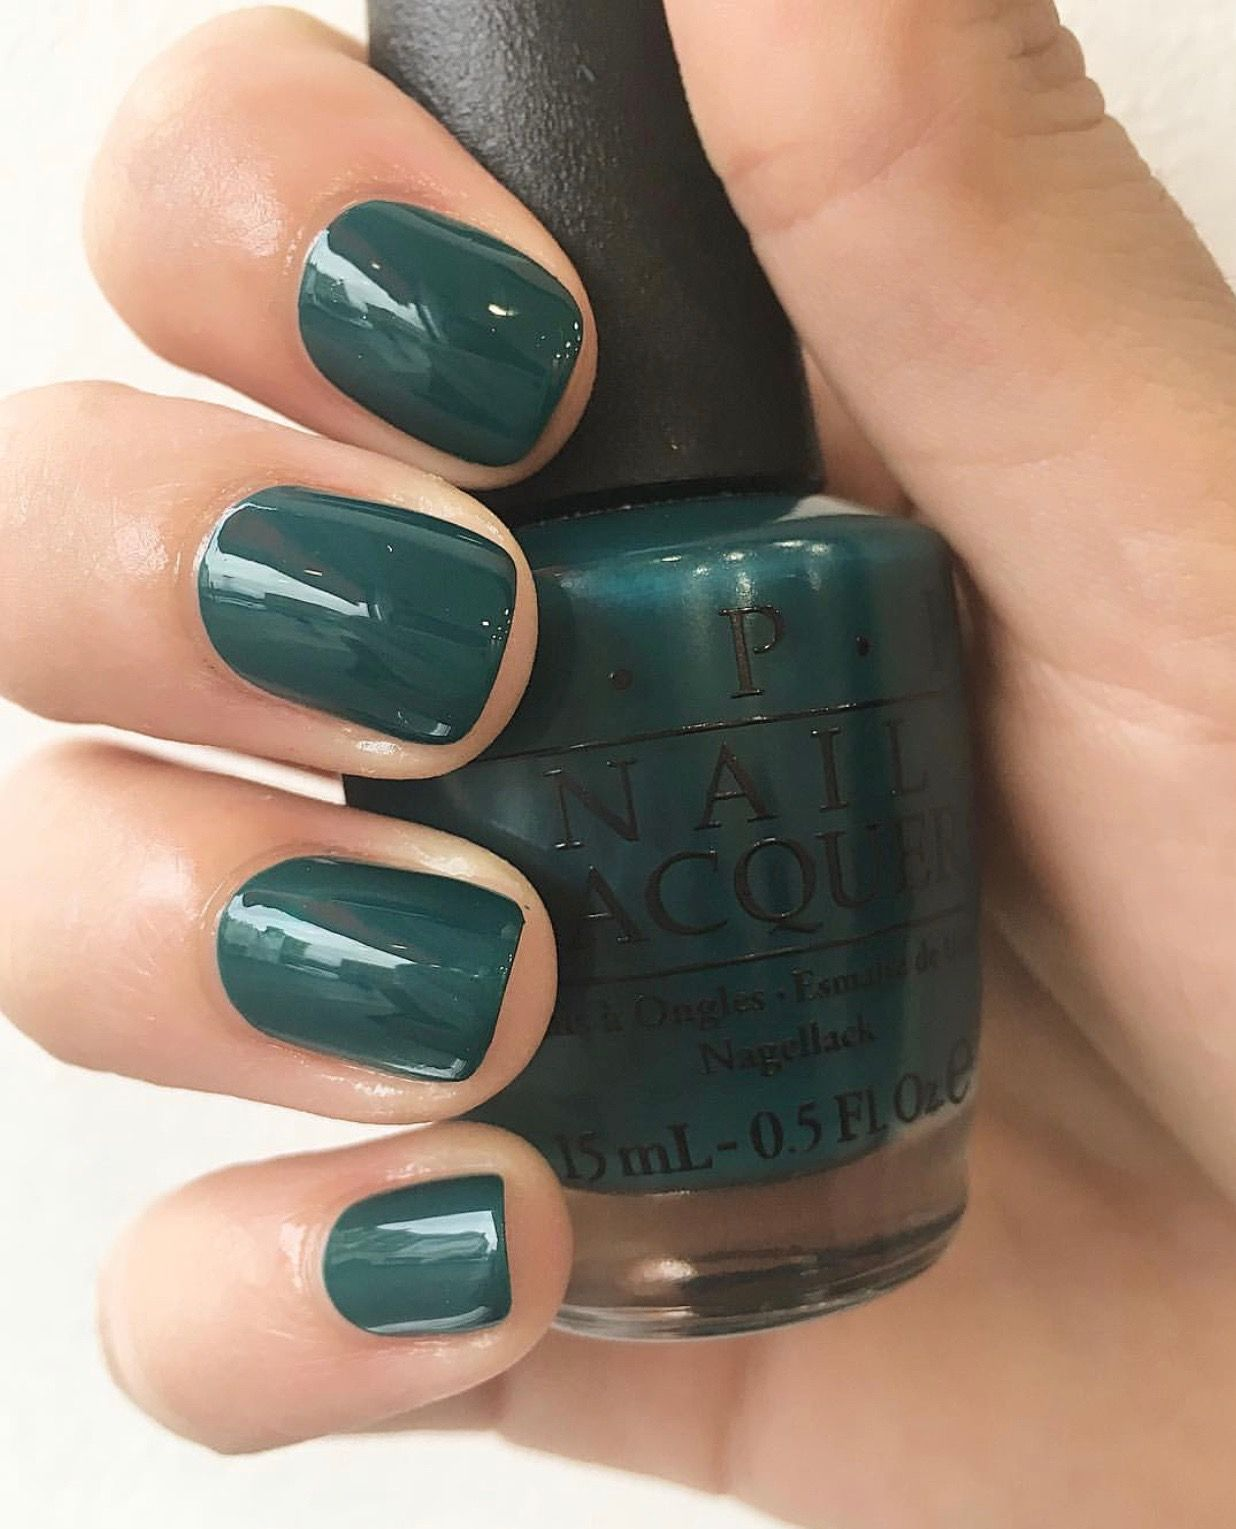 hue is the artist opi amazon